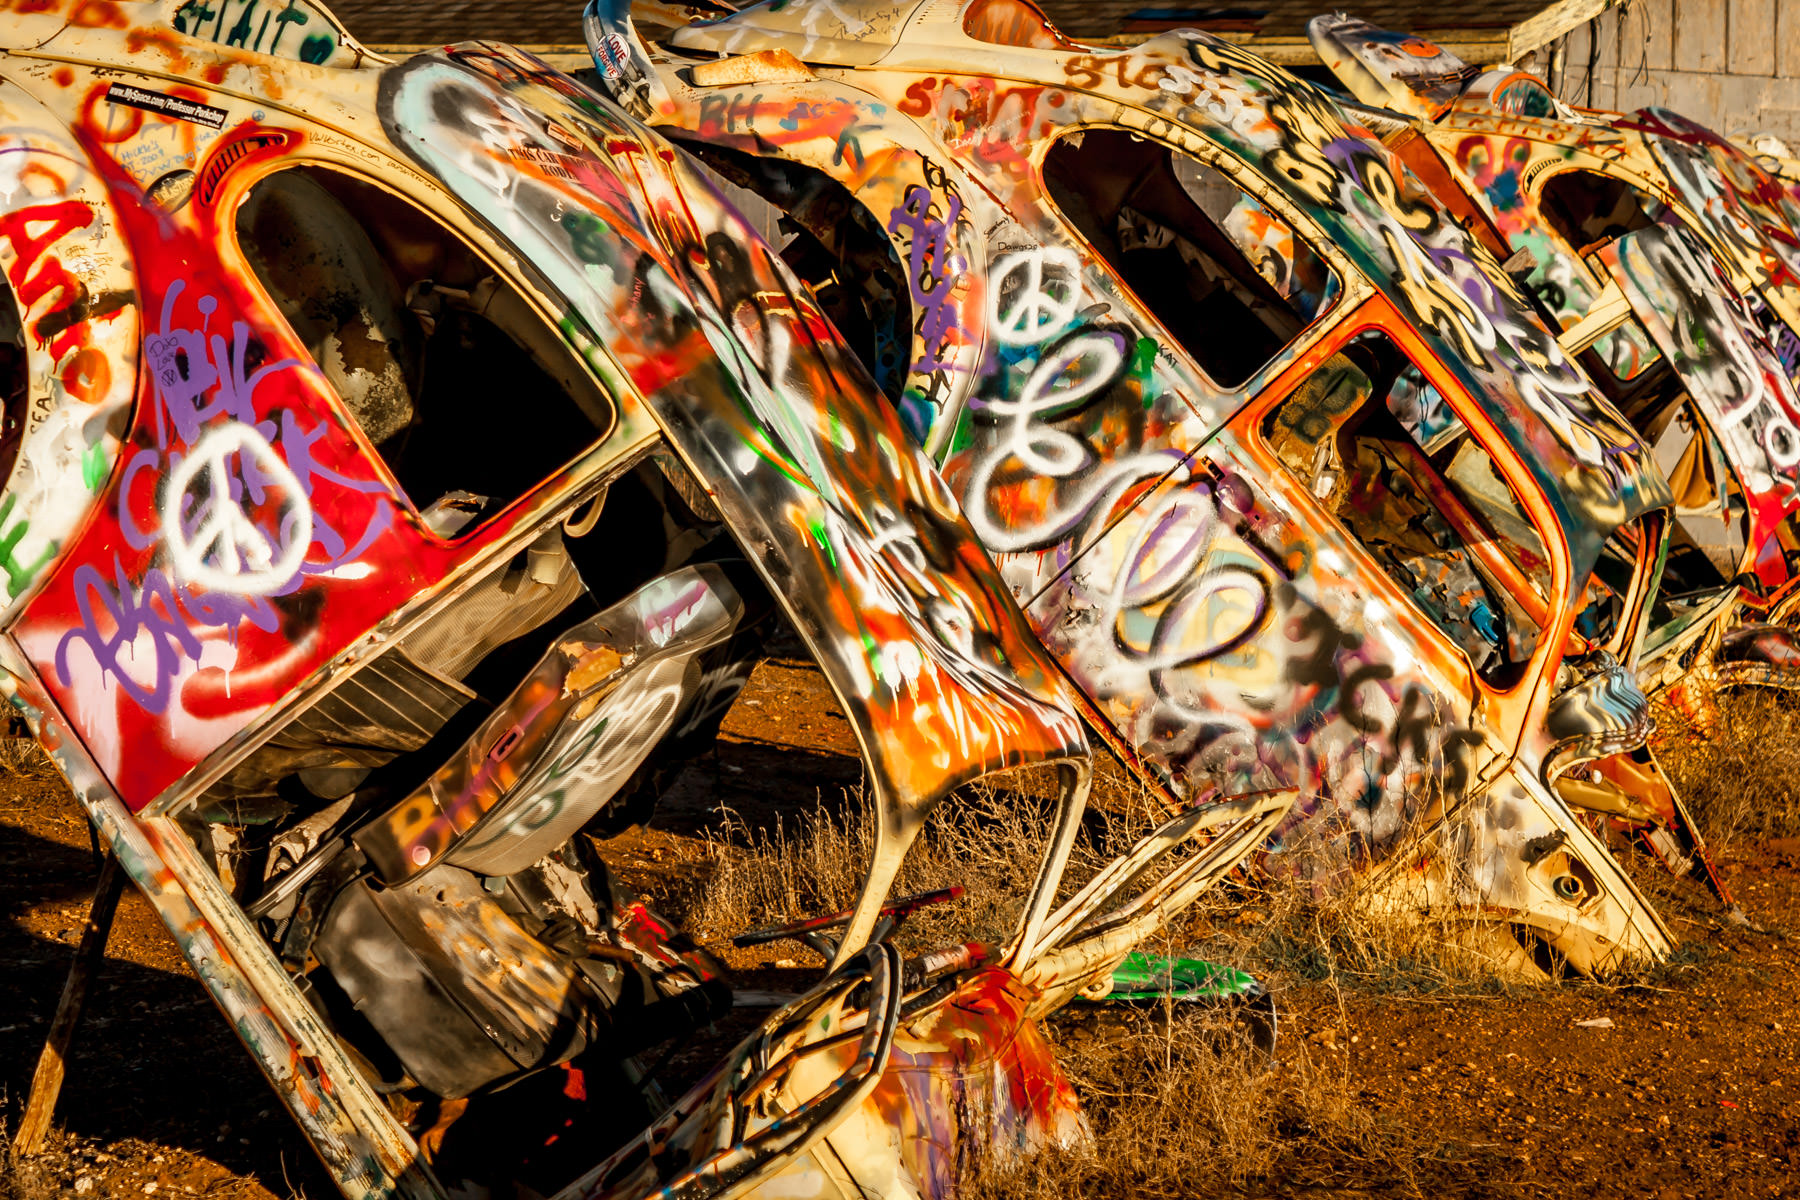 Five Volkswagen Beetles buried in the ground nose first at Slug Bug Ranch in Conway, Texas.